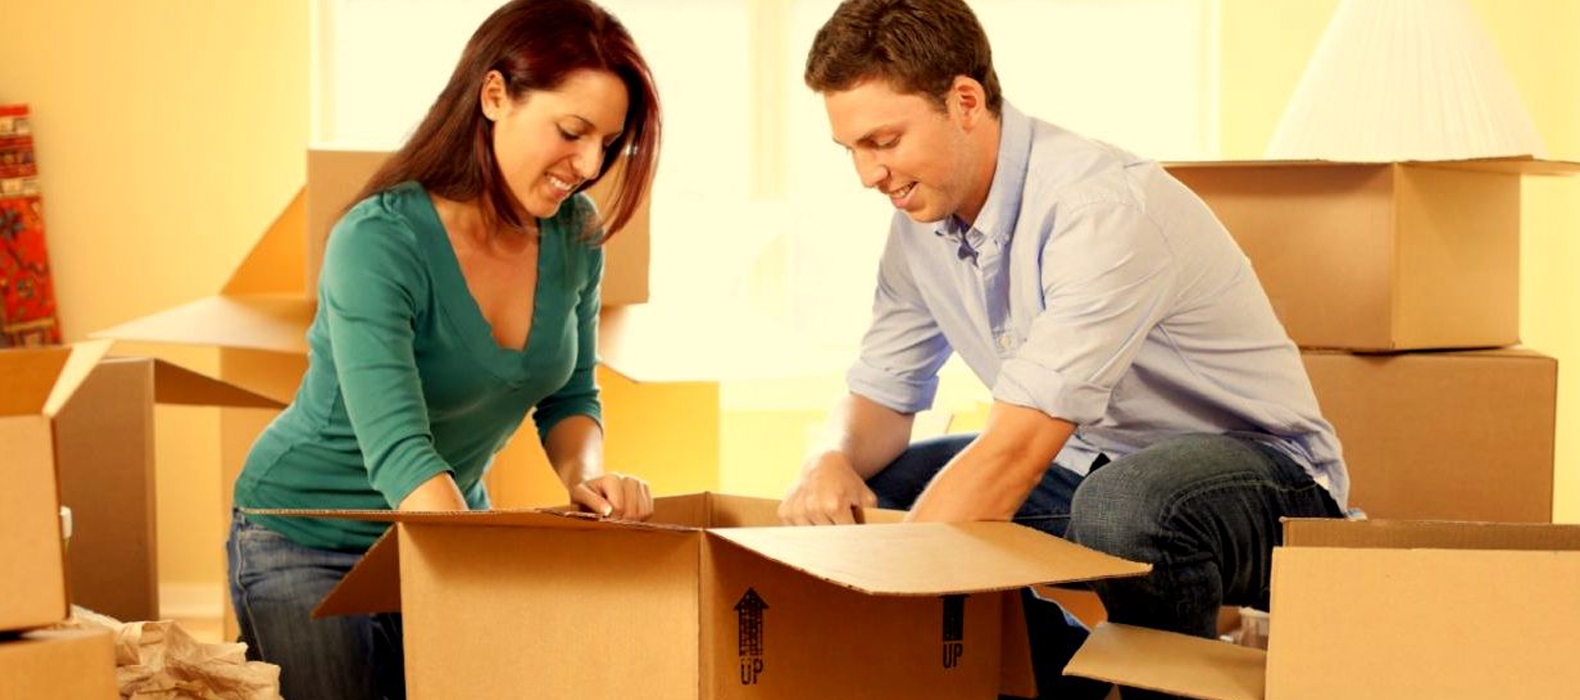 5 Thing You Should Know Before Getting Small Move Services